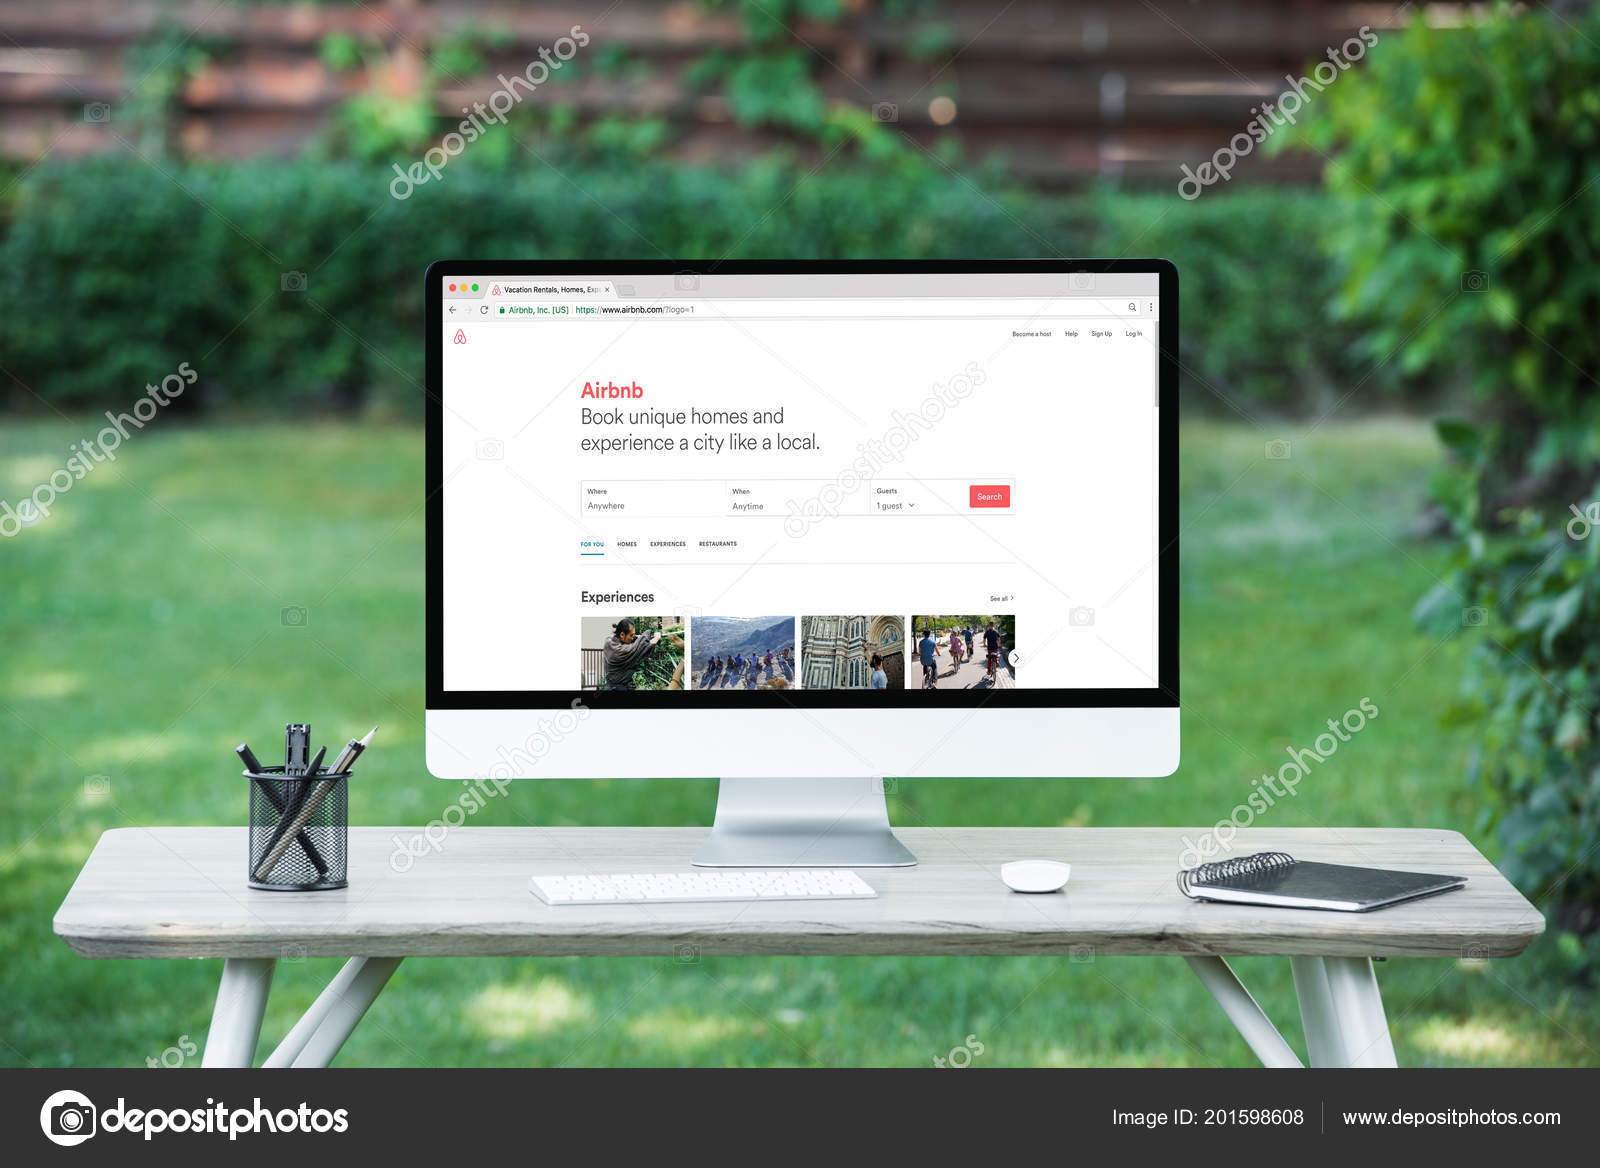 Selective Focus Computer Airbnb Website Table Outdoors